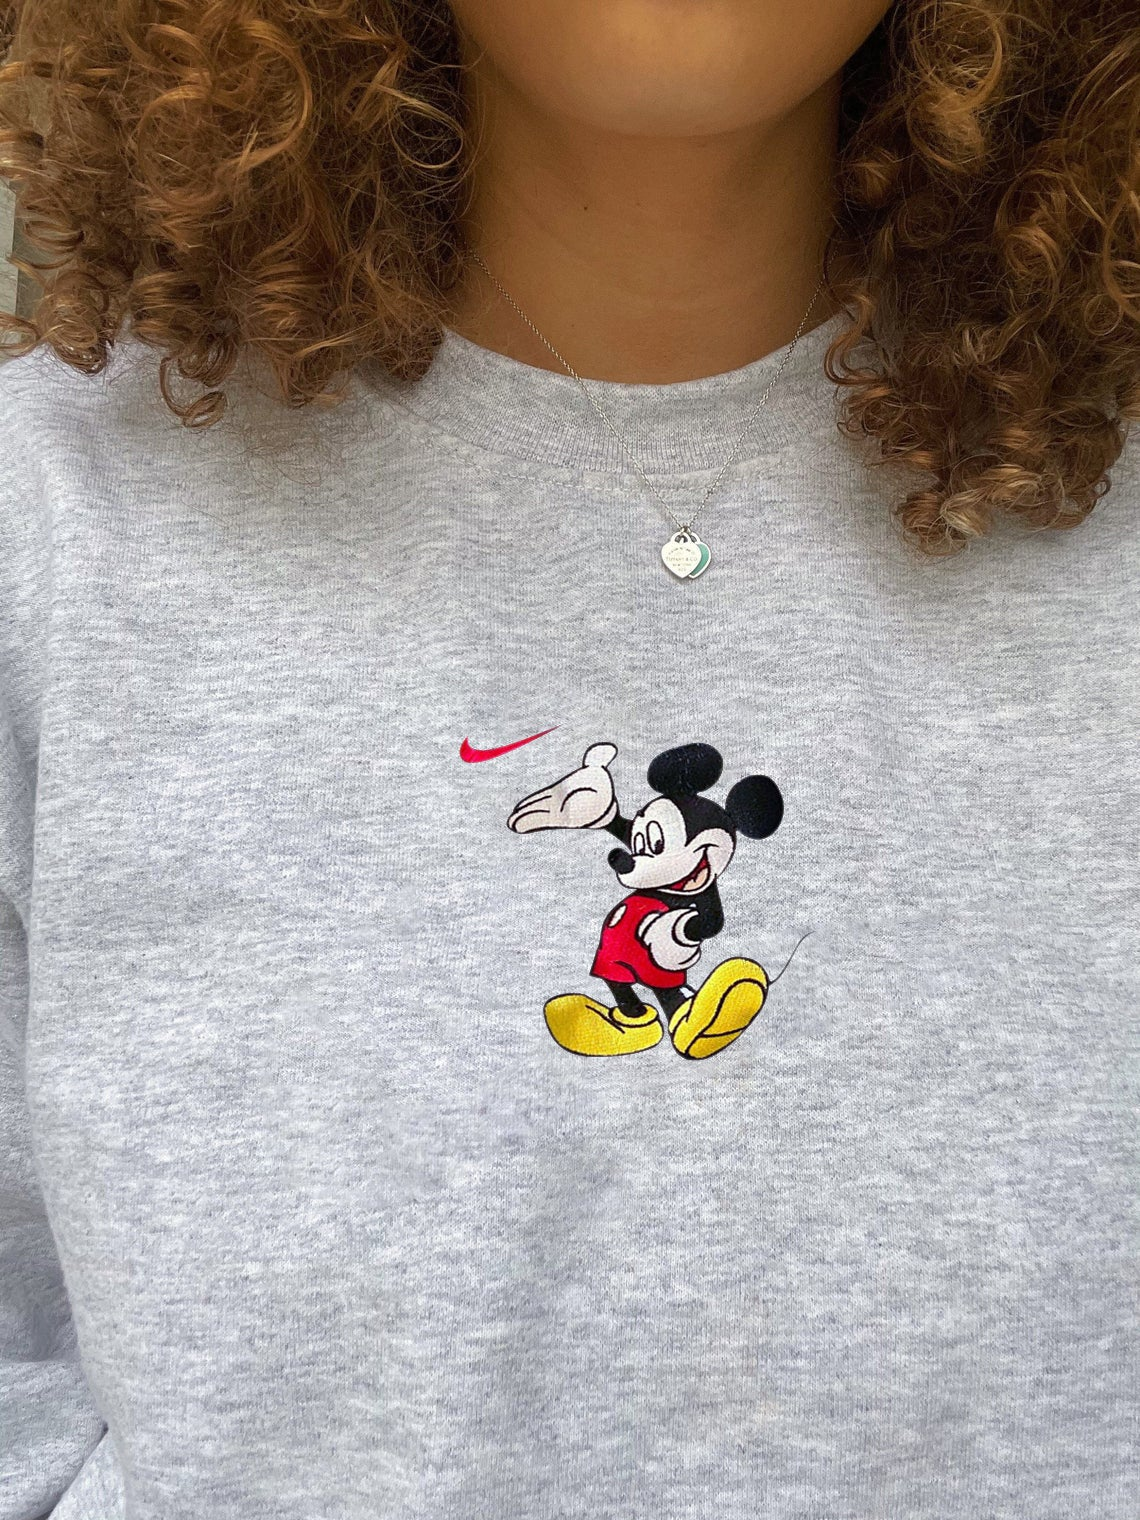 Mickey Mouse X Nike Embroidered Sweatshirt/t-shirt/hoodie Embroidery